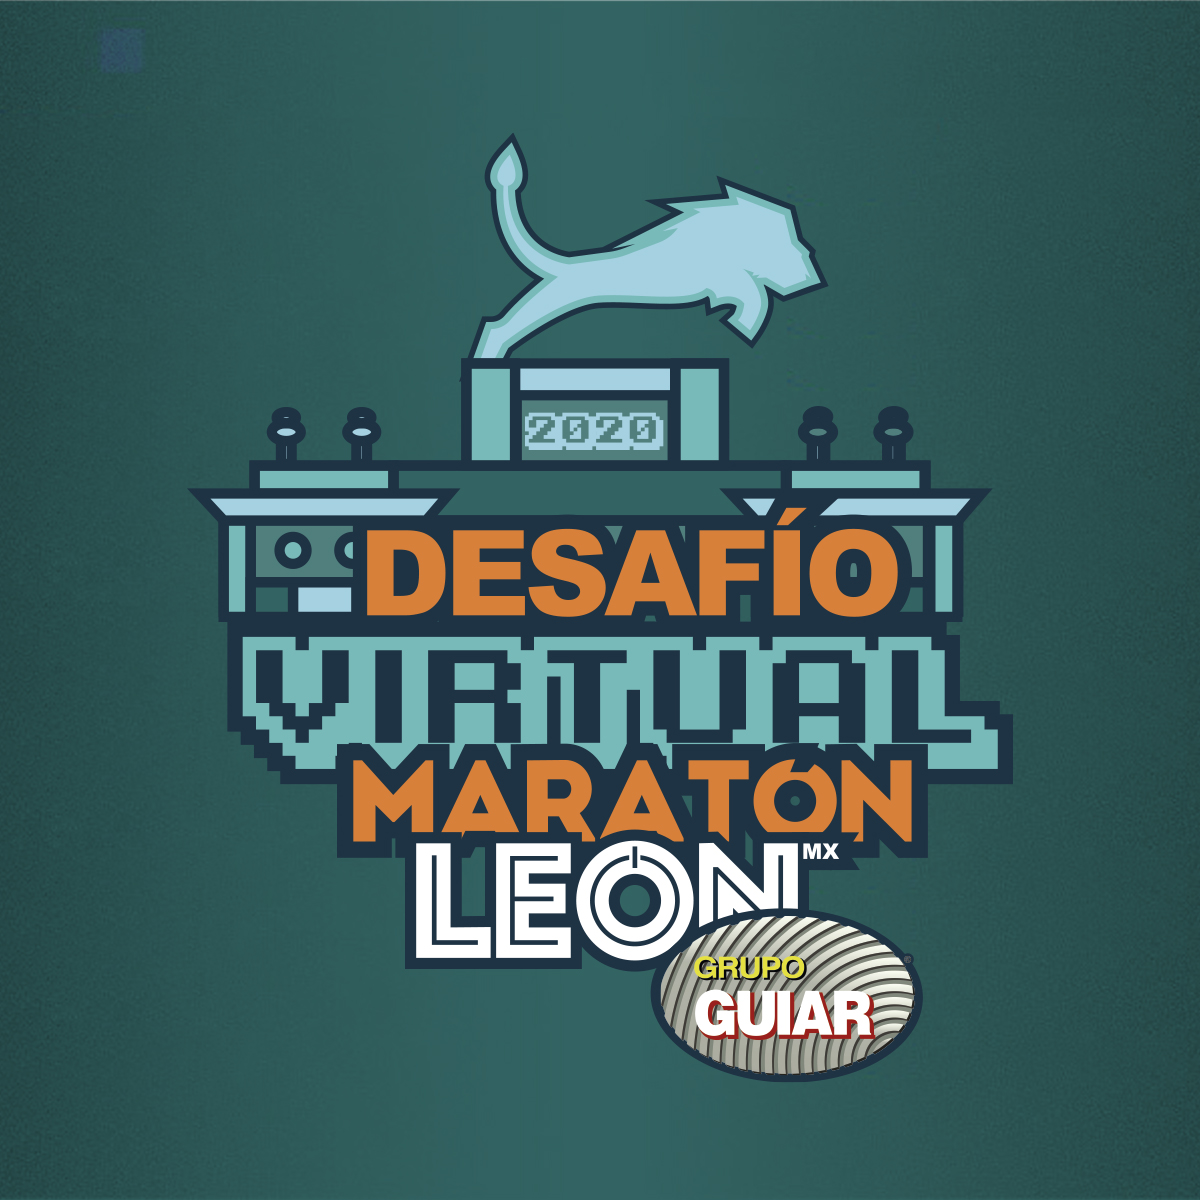 LOGO_DESAFIO_VIRTUAL_2020_1200x1200 copia.jpg